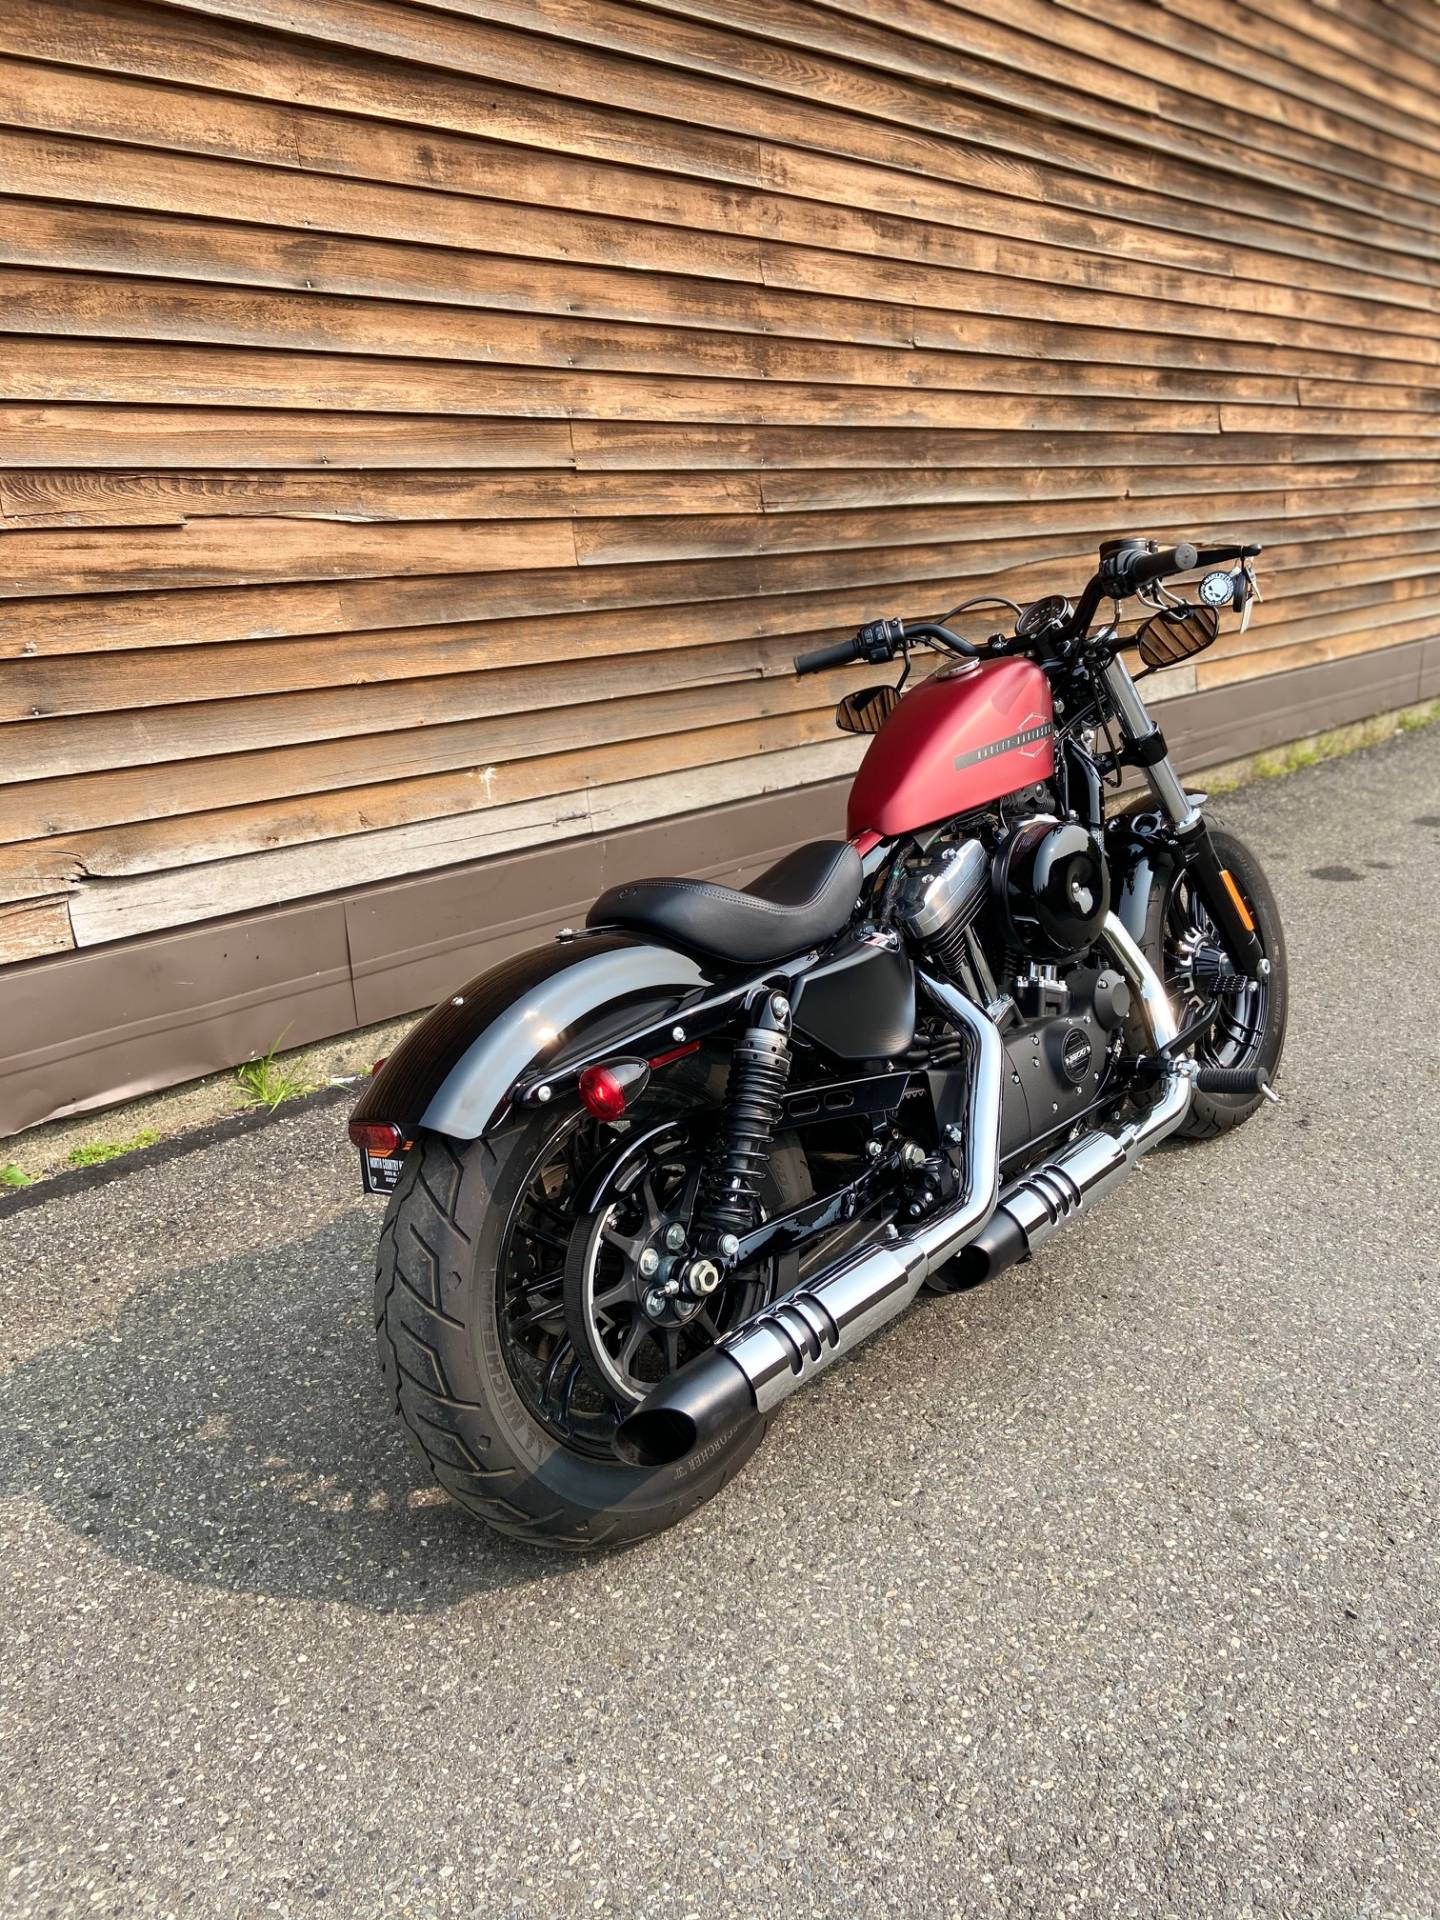 2019 Harley-Davidson Iron 1200X in Augusta, Maine - Photo 2